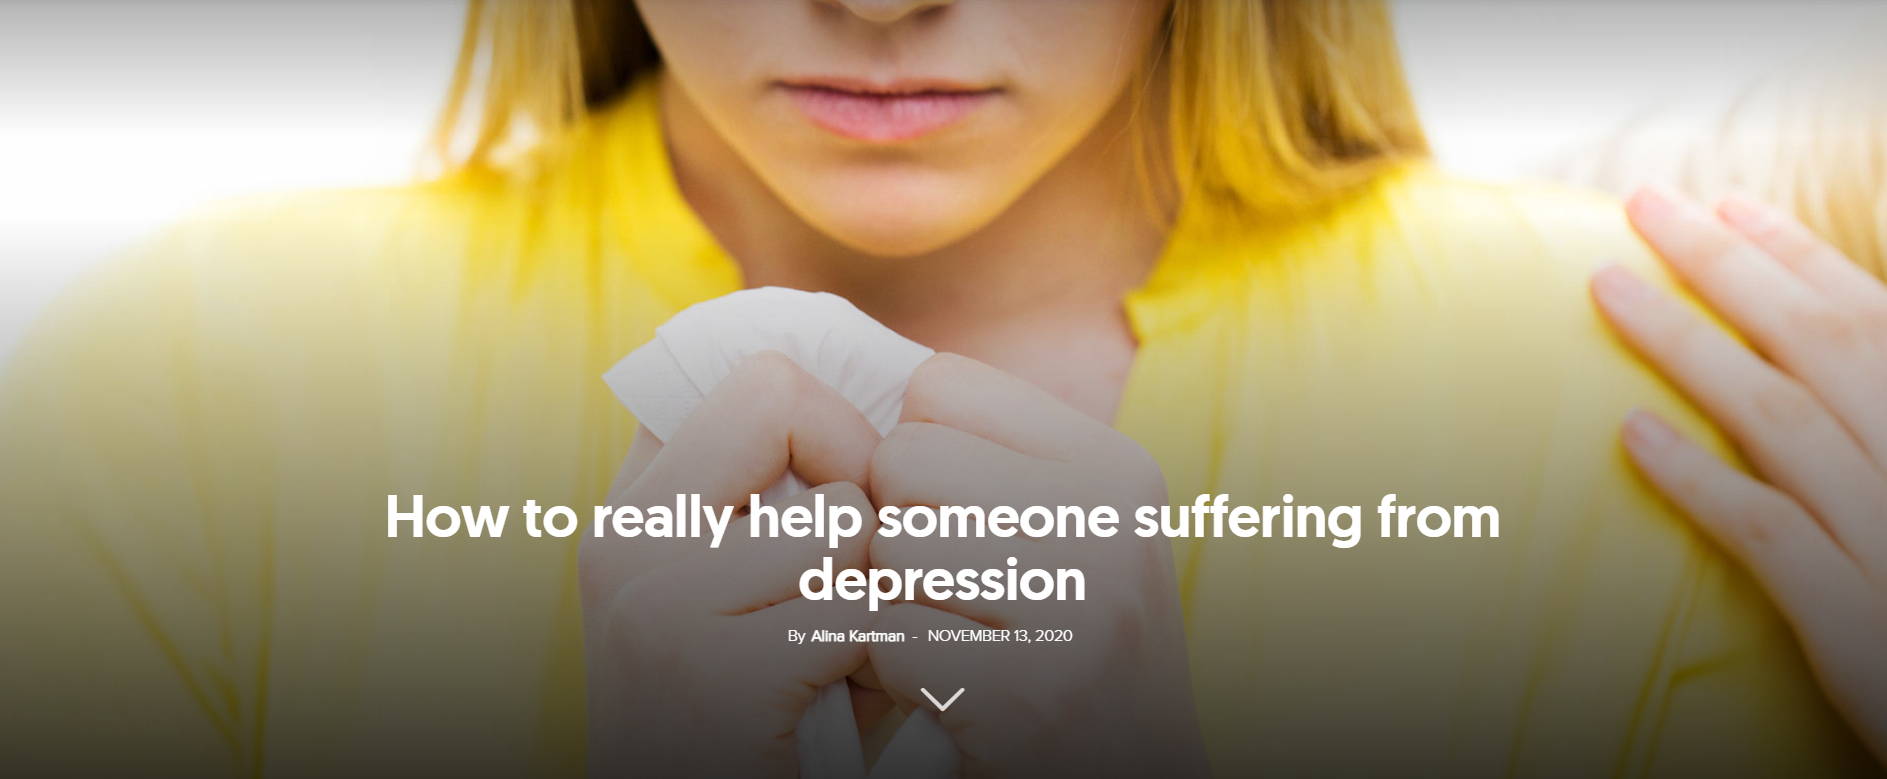 how to help someone suffering from depression